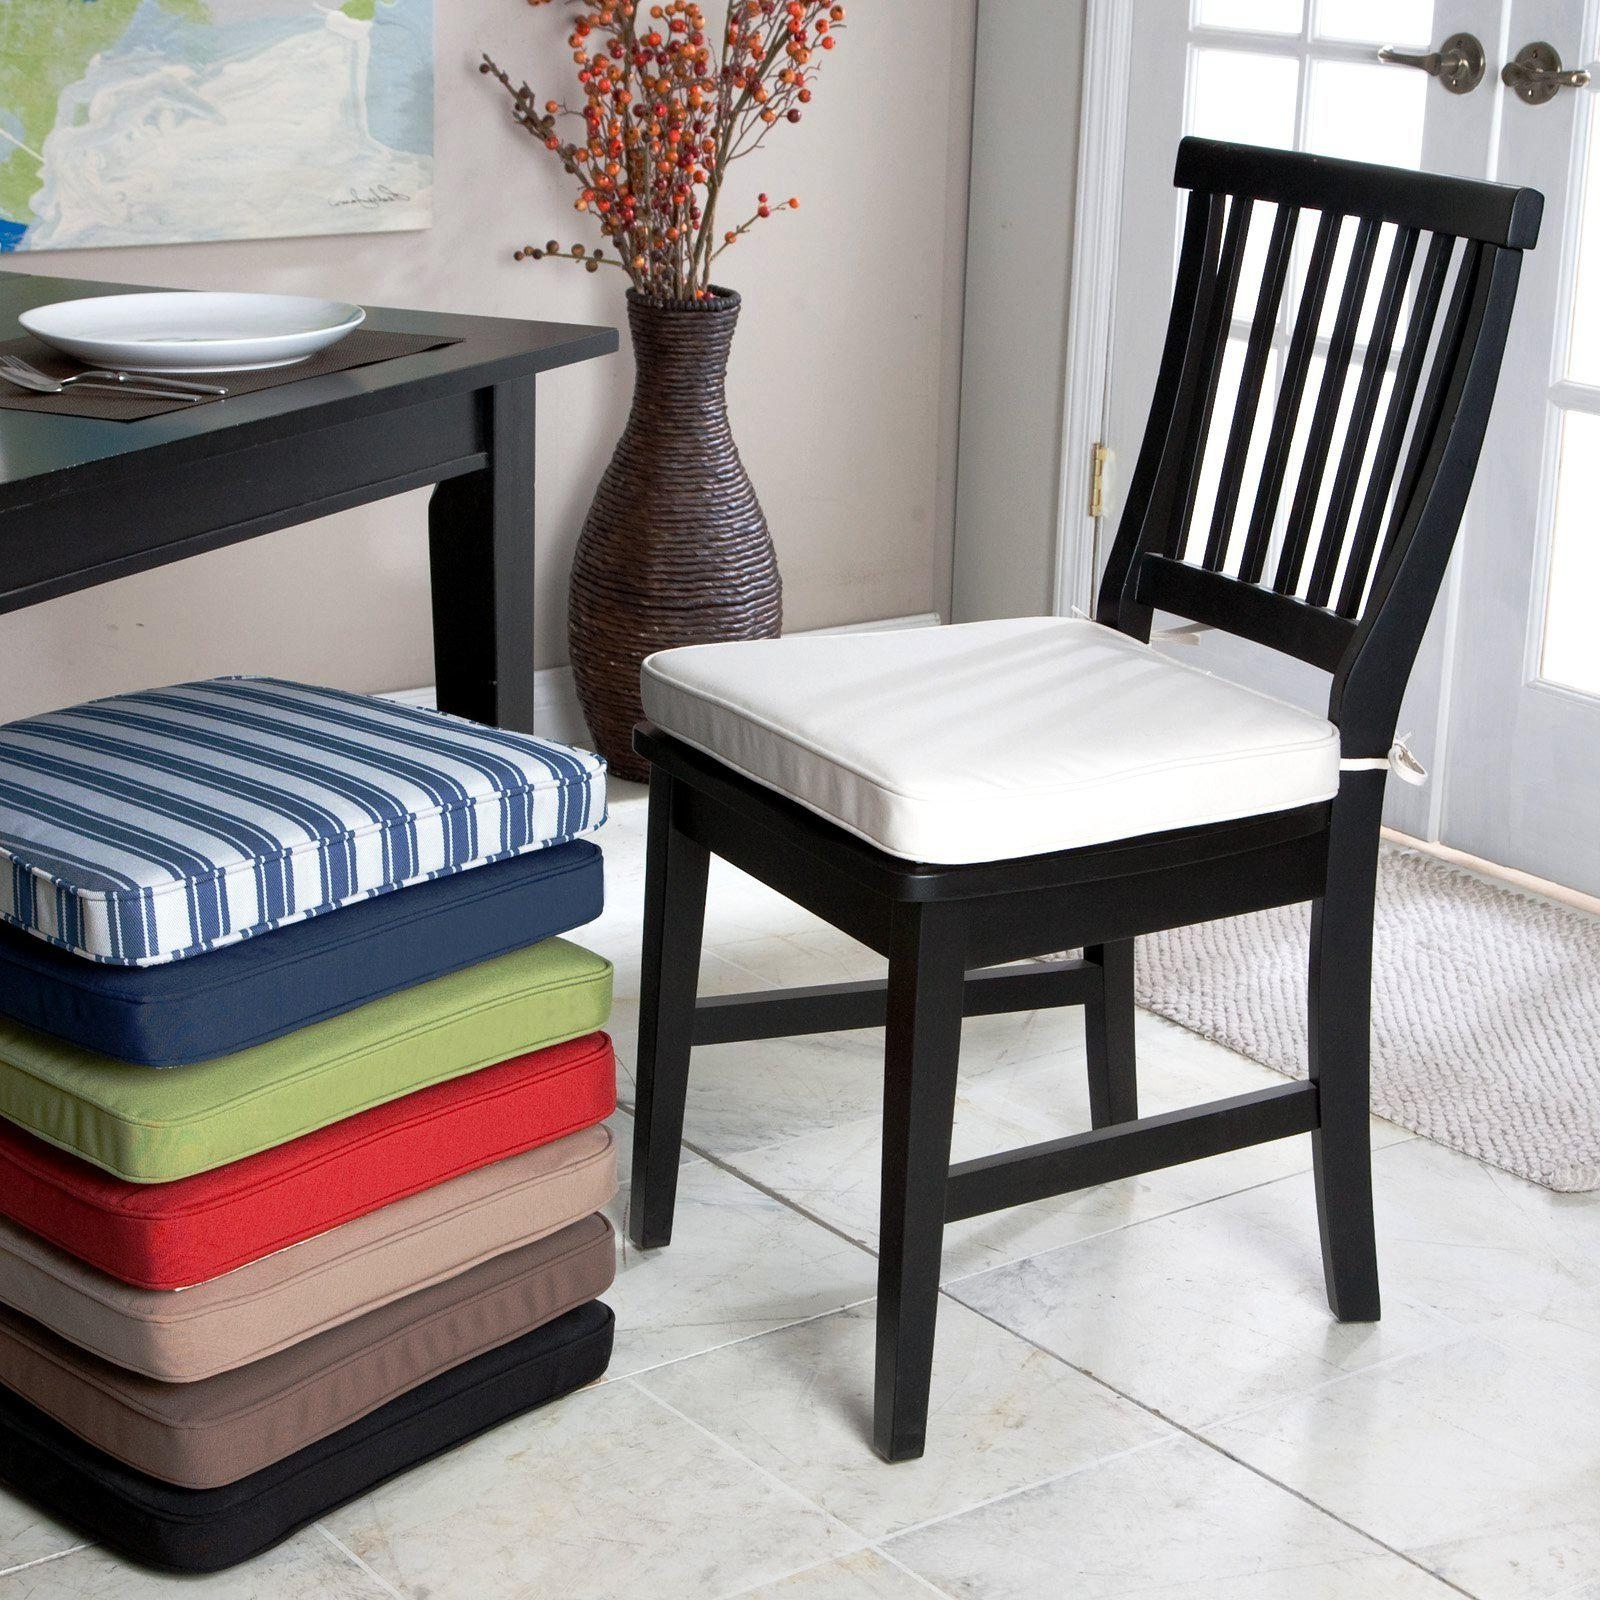 Wayfair Rocking Chair Cushions — Independent Kitchen & Bath Inside Well Known Rocking Chairs At Wayfair (View 18 of 20)